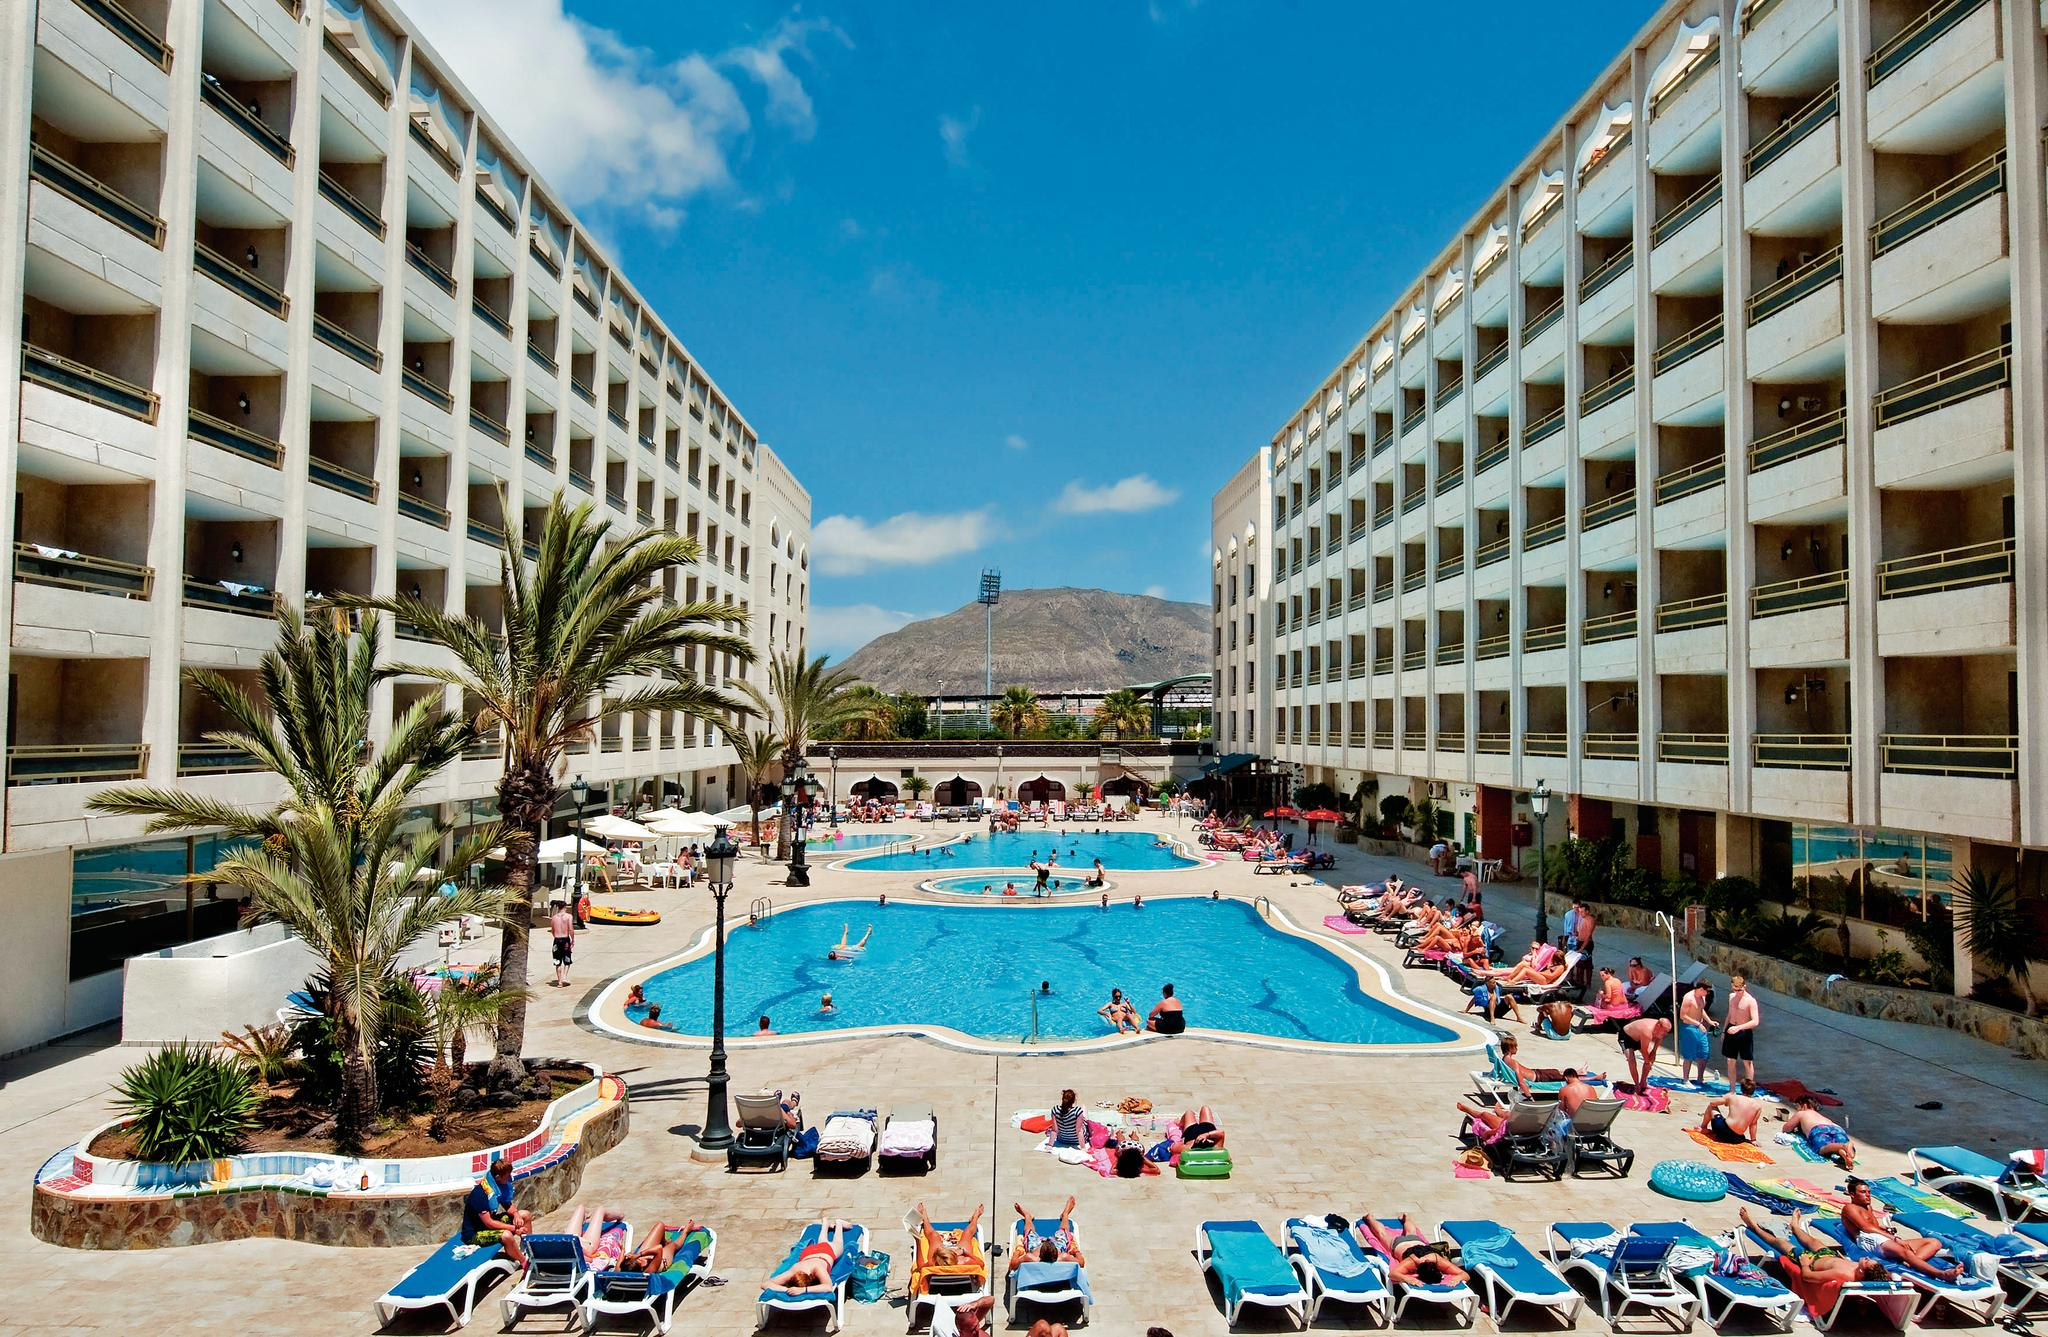 Columbus Aparthotel in Playa de las Americas, Tenerife, Canary Islands